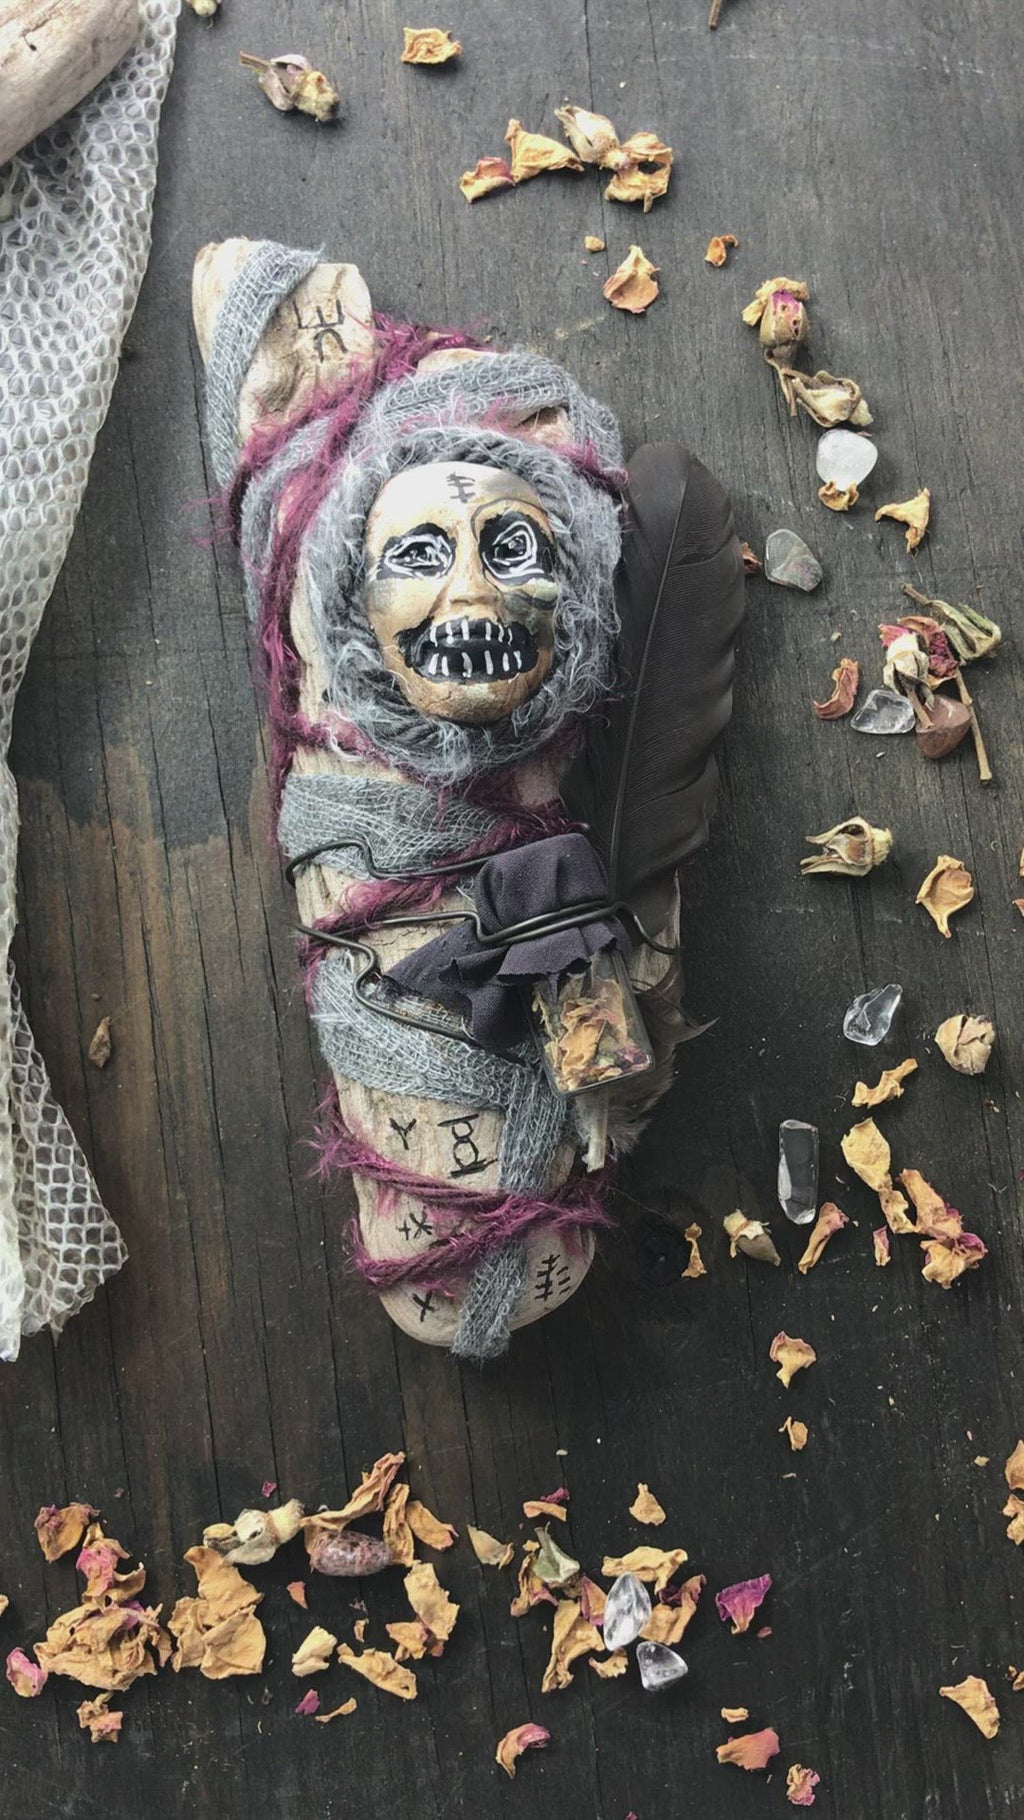 Wise Woman Spirit Doll with Rose Petals, Poke Root, Snake Skin and Ghost Quartz for Self Love, Transformation and Freedom